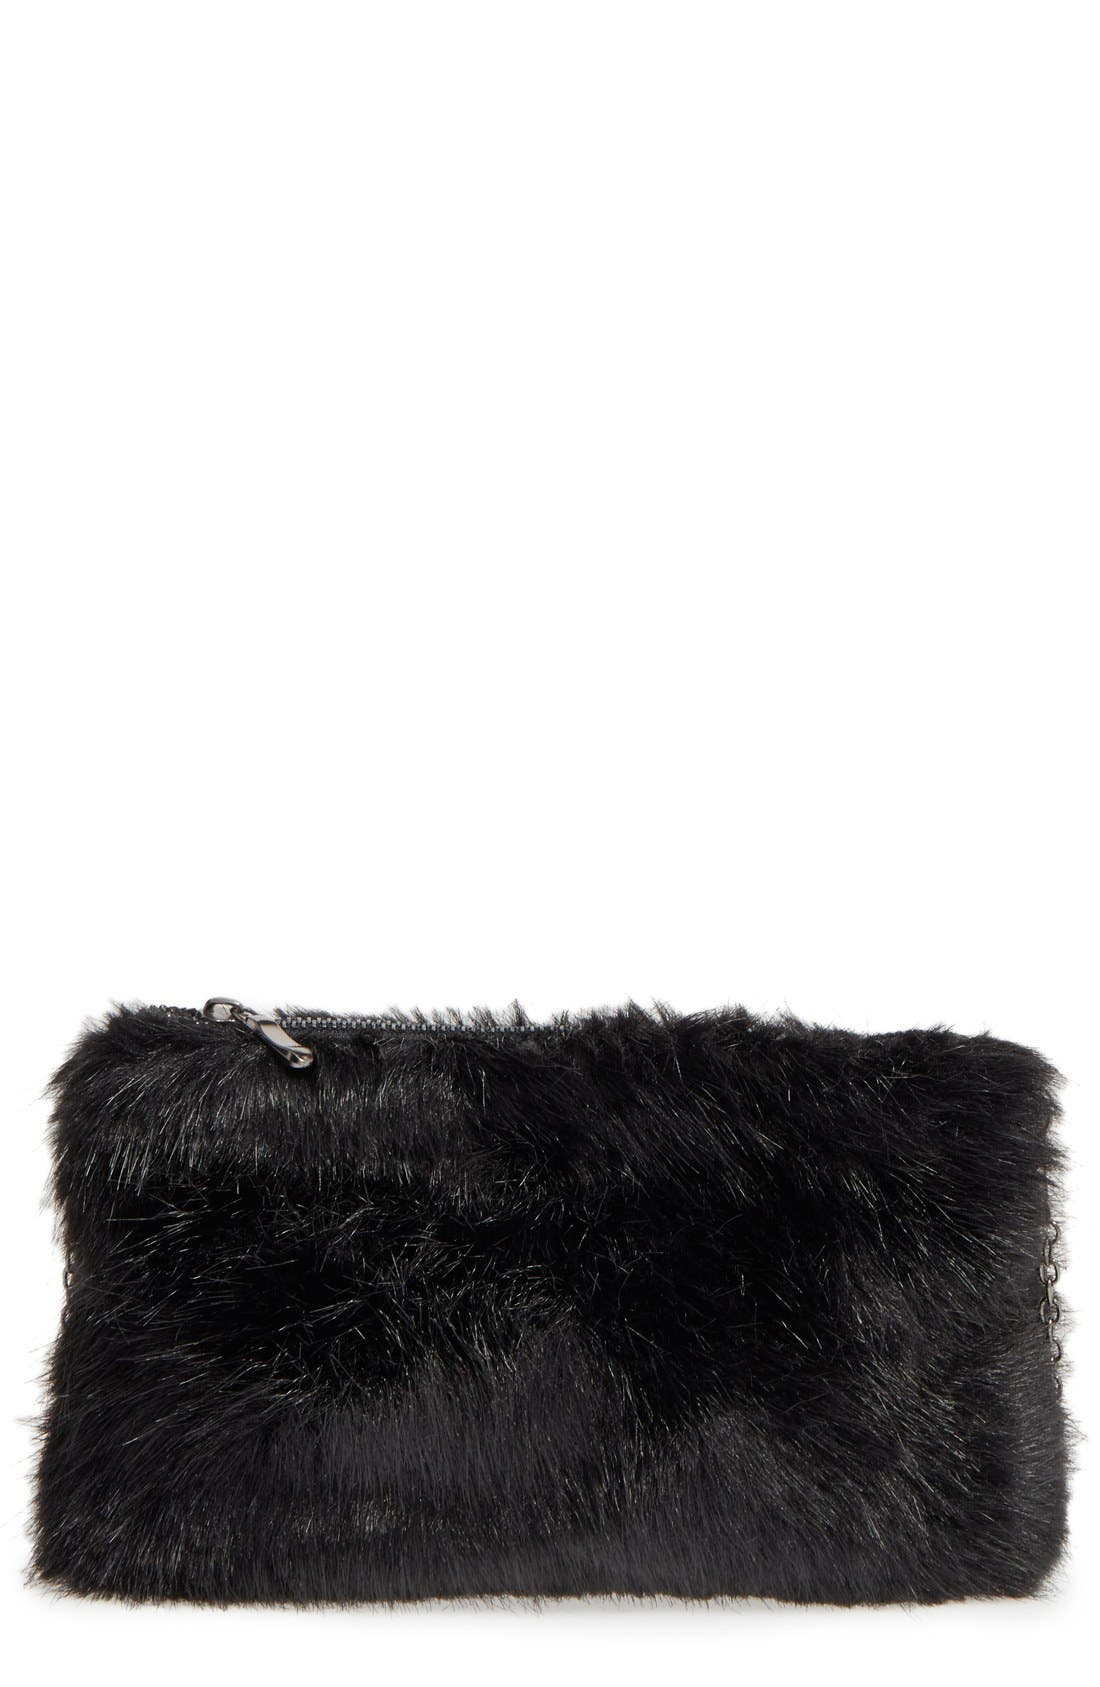 Alternate Image 1 Selected - BP. Faux Fur Clutch